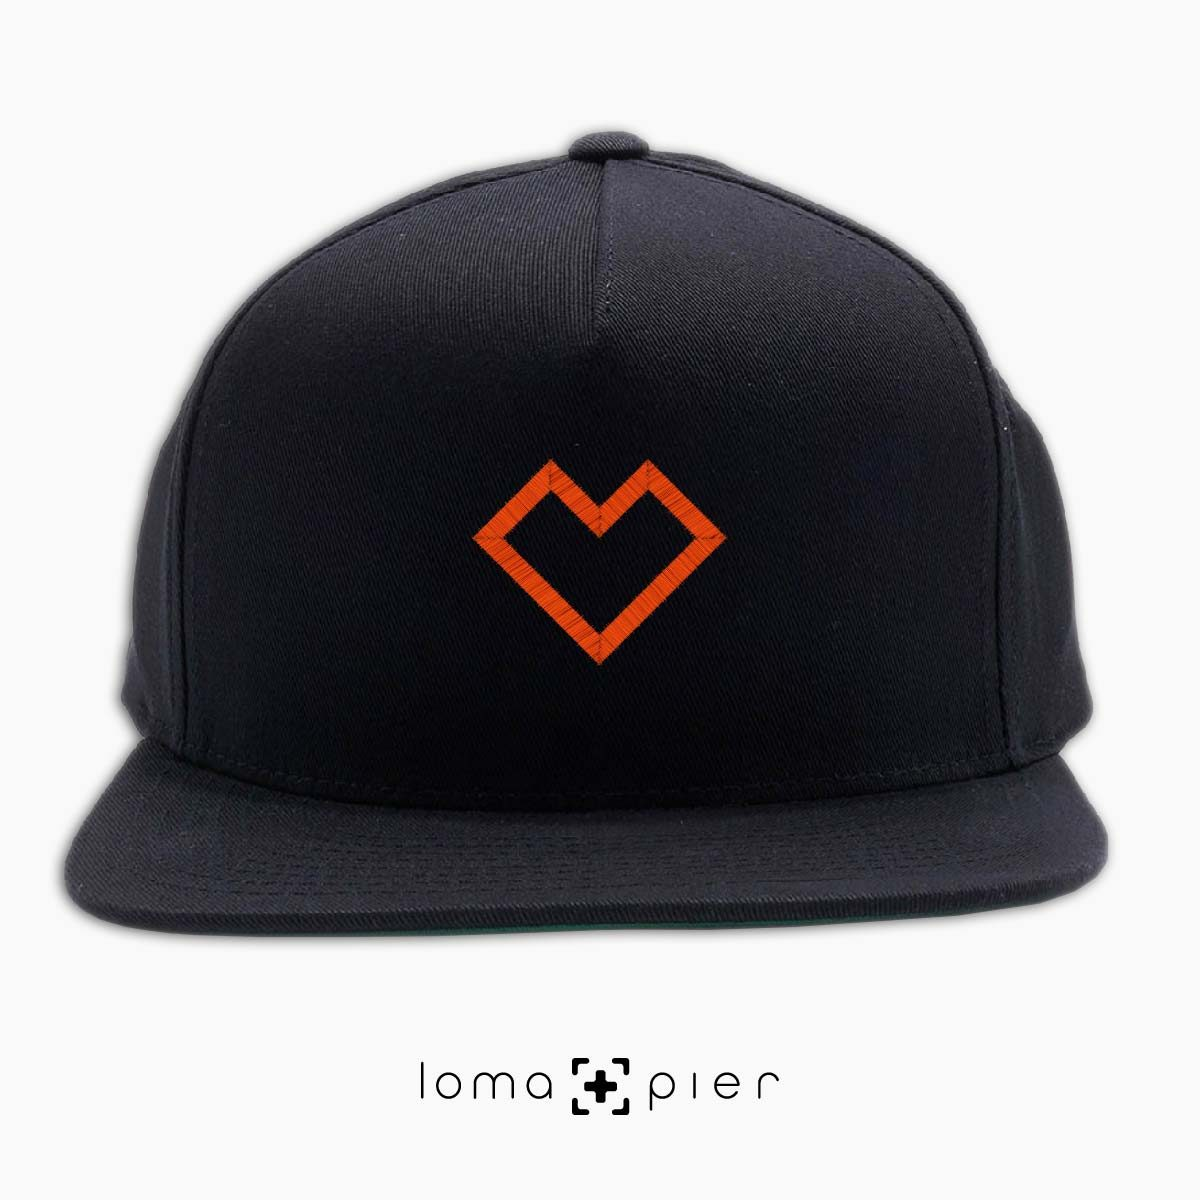 EDGY HEART icon embroidered on a black classic snapback hat with orange thread by loma+pier hat store